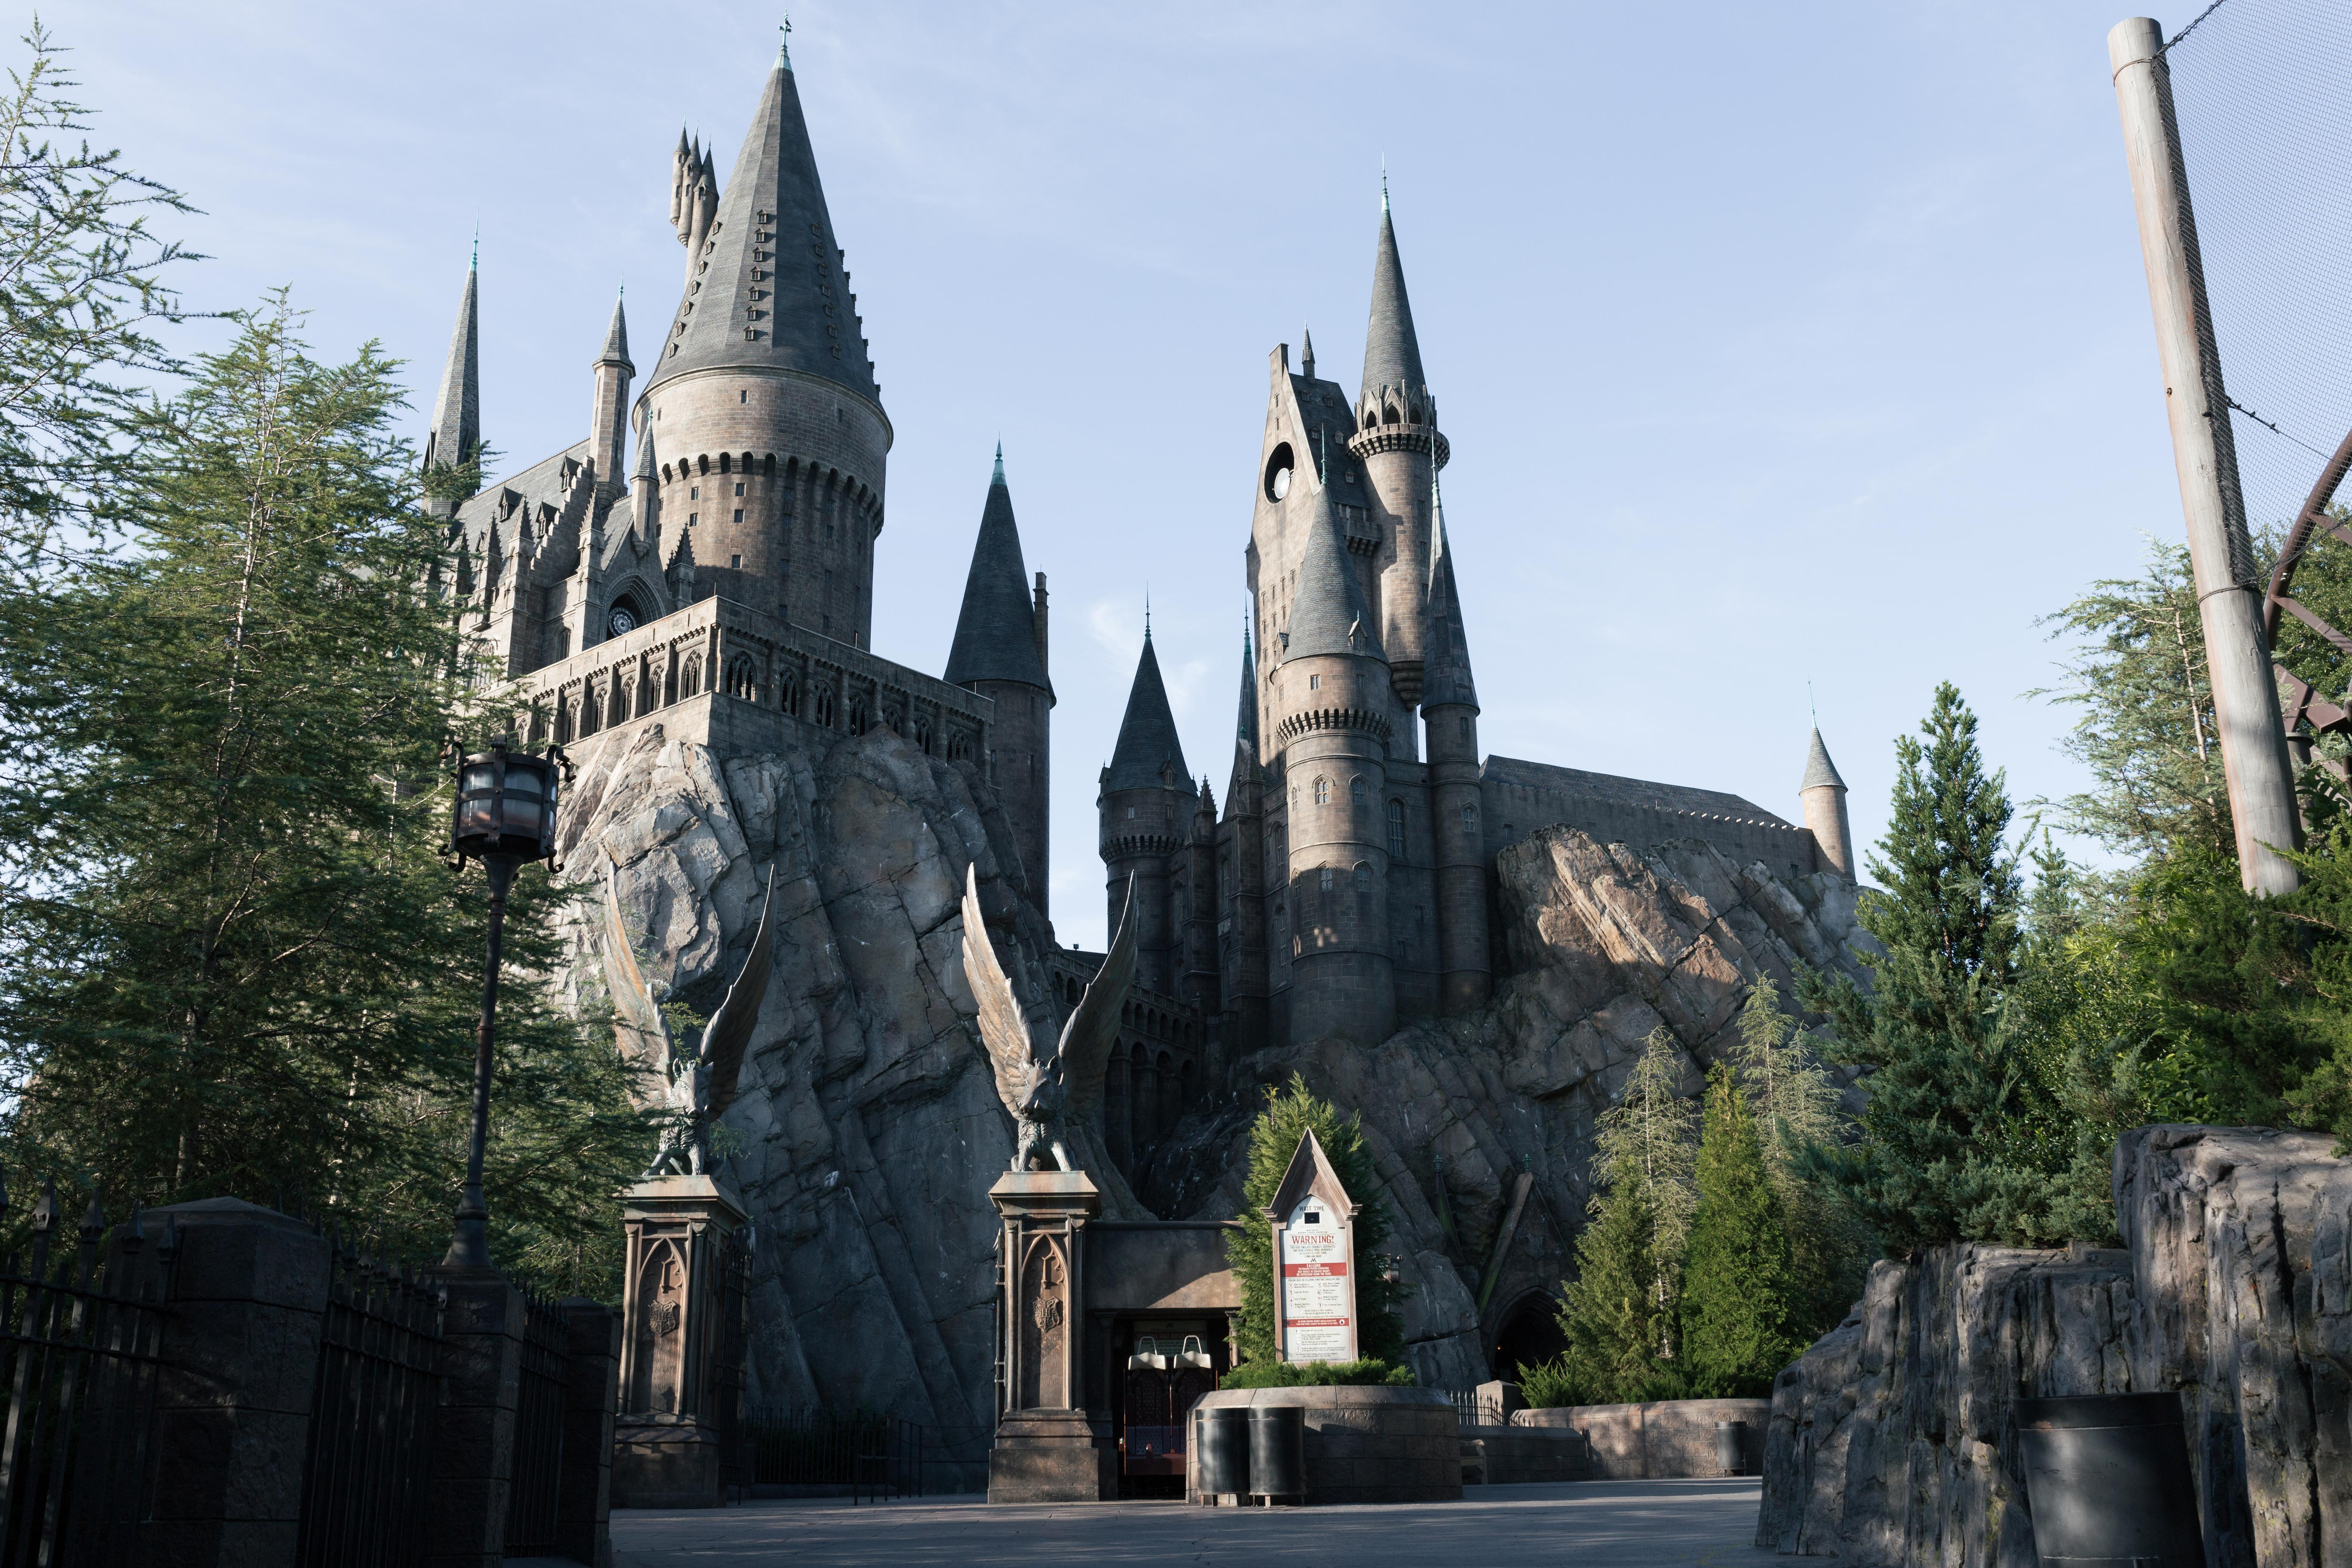 From the books to the movies, we just celebrated twenty magical years since the world was introduced to an average boy named Harry Potter and his journey to realizing the power that lived within him. Now, Universal Orlando Resort™ has brought The Wizarding World of Harry Potter™ to life.